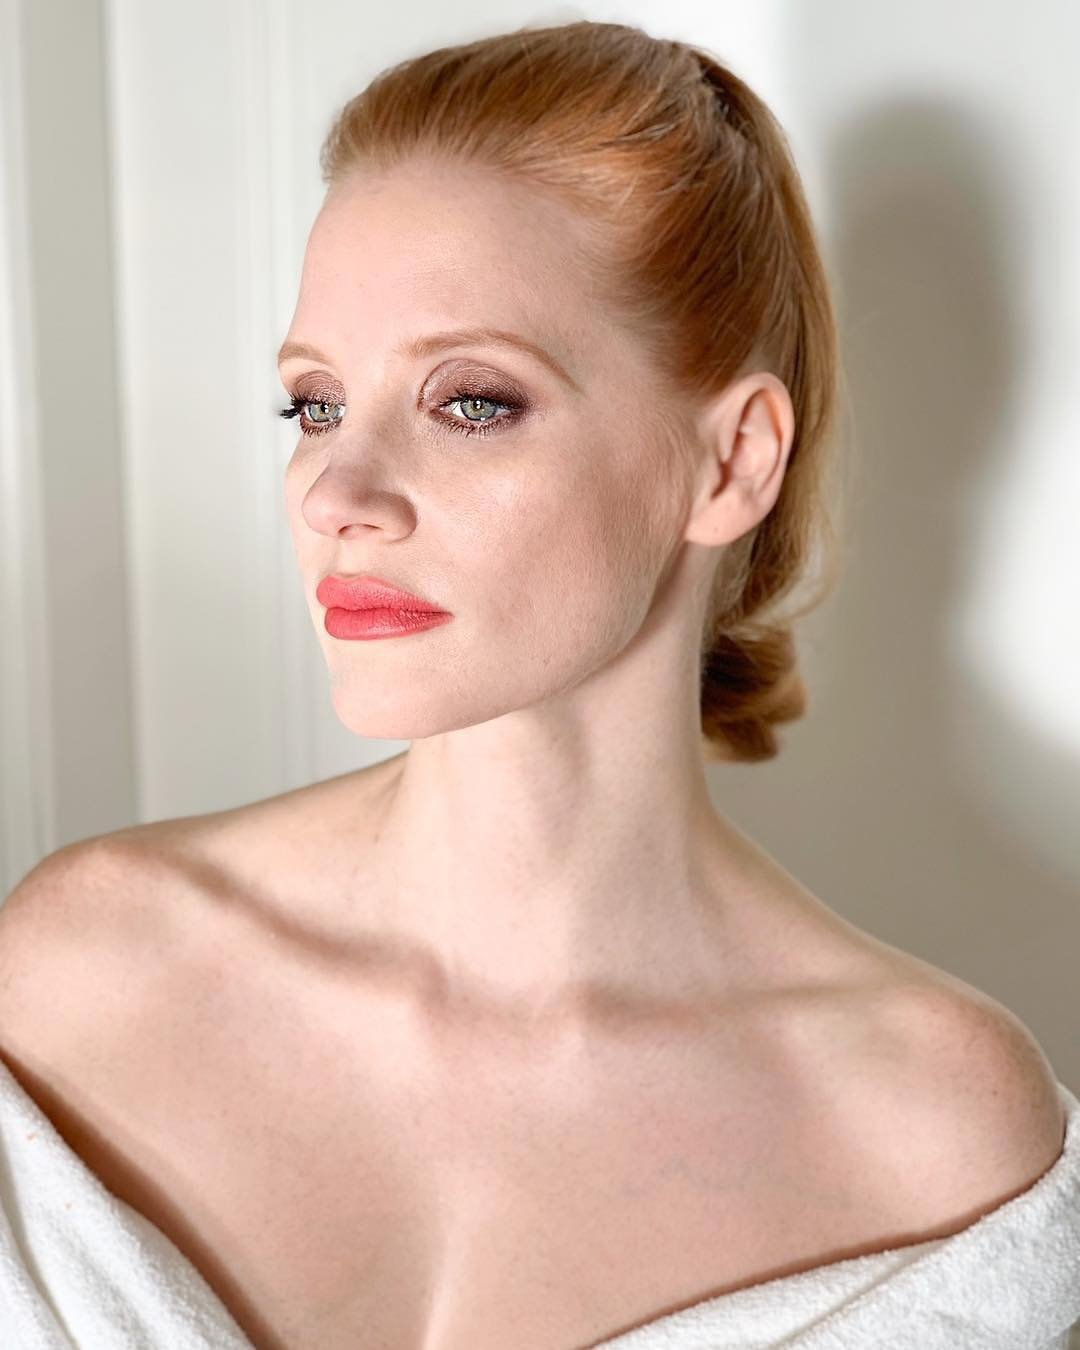 Jessica Chastain has posted a photo on Instagram with the following remarks: #tbt to this glam look @renatocampora ・・・ #goldenglobes #repost Twitter, 2019-01-11 11:32:40. Photo supplied by insight media. Service fee applies. NICHT ZUR VERÖFFENTLICHUNG IN BÜCHERN UND BILDBÄNDEN! EDITORIAL USE ONLY! / MAY NOT BE PUBLISHED IN BOOKS AND ILLUSTRATED BOOKS! Please note: Fees charged by the agency are for the agency's services only, and do not, nor are they intended to, convey to the user any ownership of Copyright or License in the material. The agency does not claim any ownership including but not limited to Copyright or License in the attached material. By publishing this material you expressly agree to indemnify and to hold the agency and its directors, shareholders and employees harmless from any loss, claims, damages, demands, expenses (including legal fees), or any causes of action or allegation against the agency arising out of or connected in any way with publication of the material., Image: 406548462, License: Rights-managed, Restrictions: NICHT ZUR VERÖFFENTLICHUNG IN BÜCHERN UND BILDBÄNDEN! Please note additional conditions in the caption, Model Release: no, Credit line: Profimedia, Insight Media